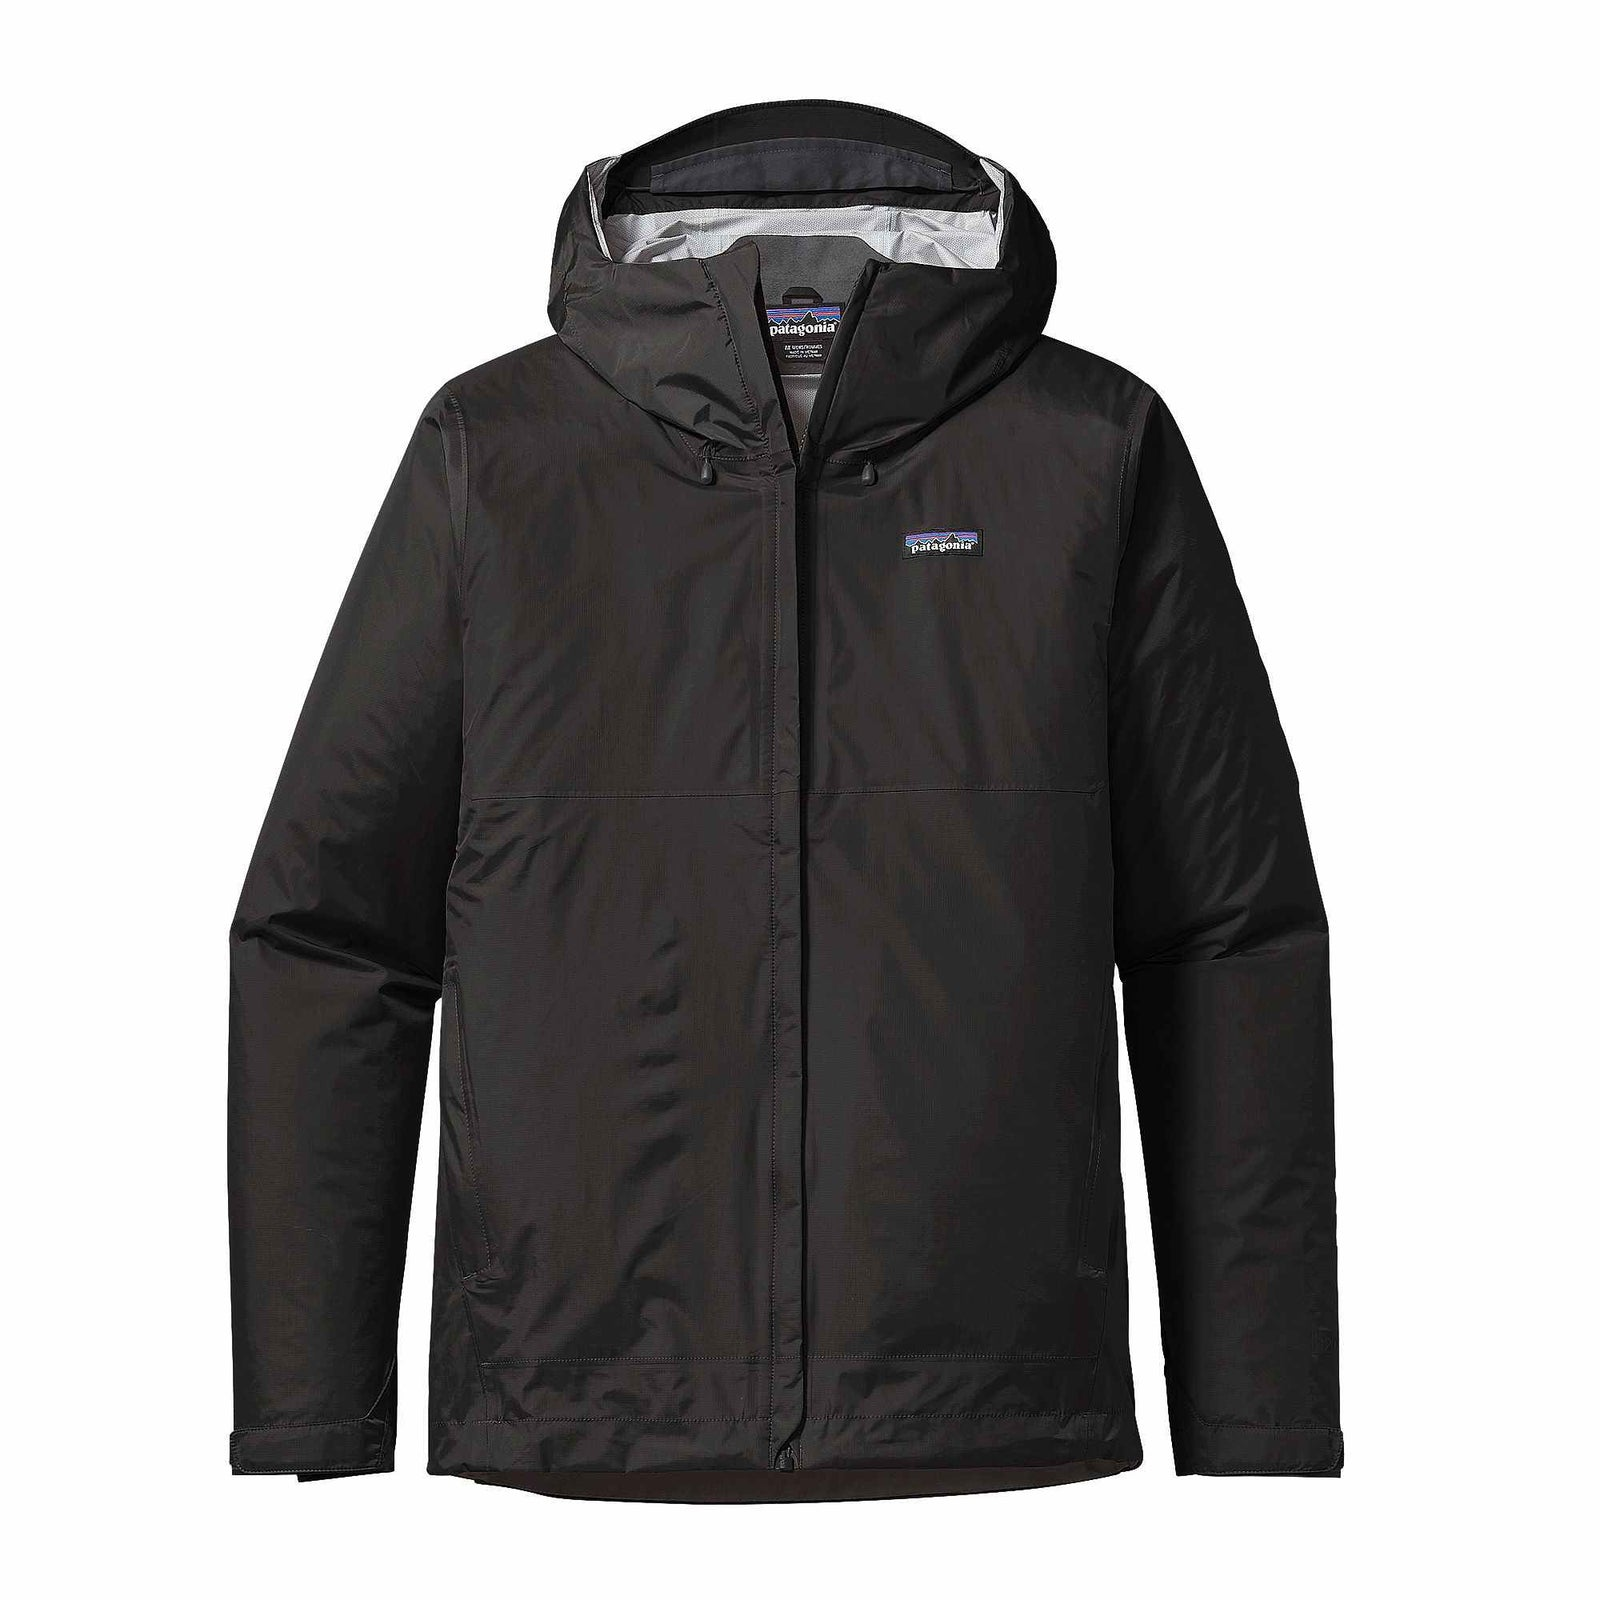 Patagonia Men's Torrentshell Jacket - Trailblazer Outdoors, Pickering